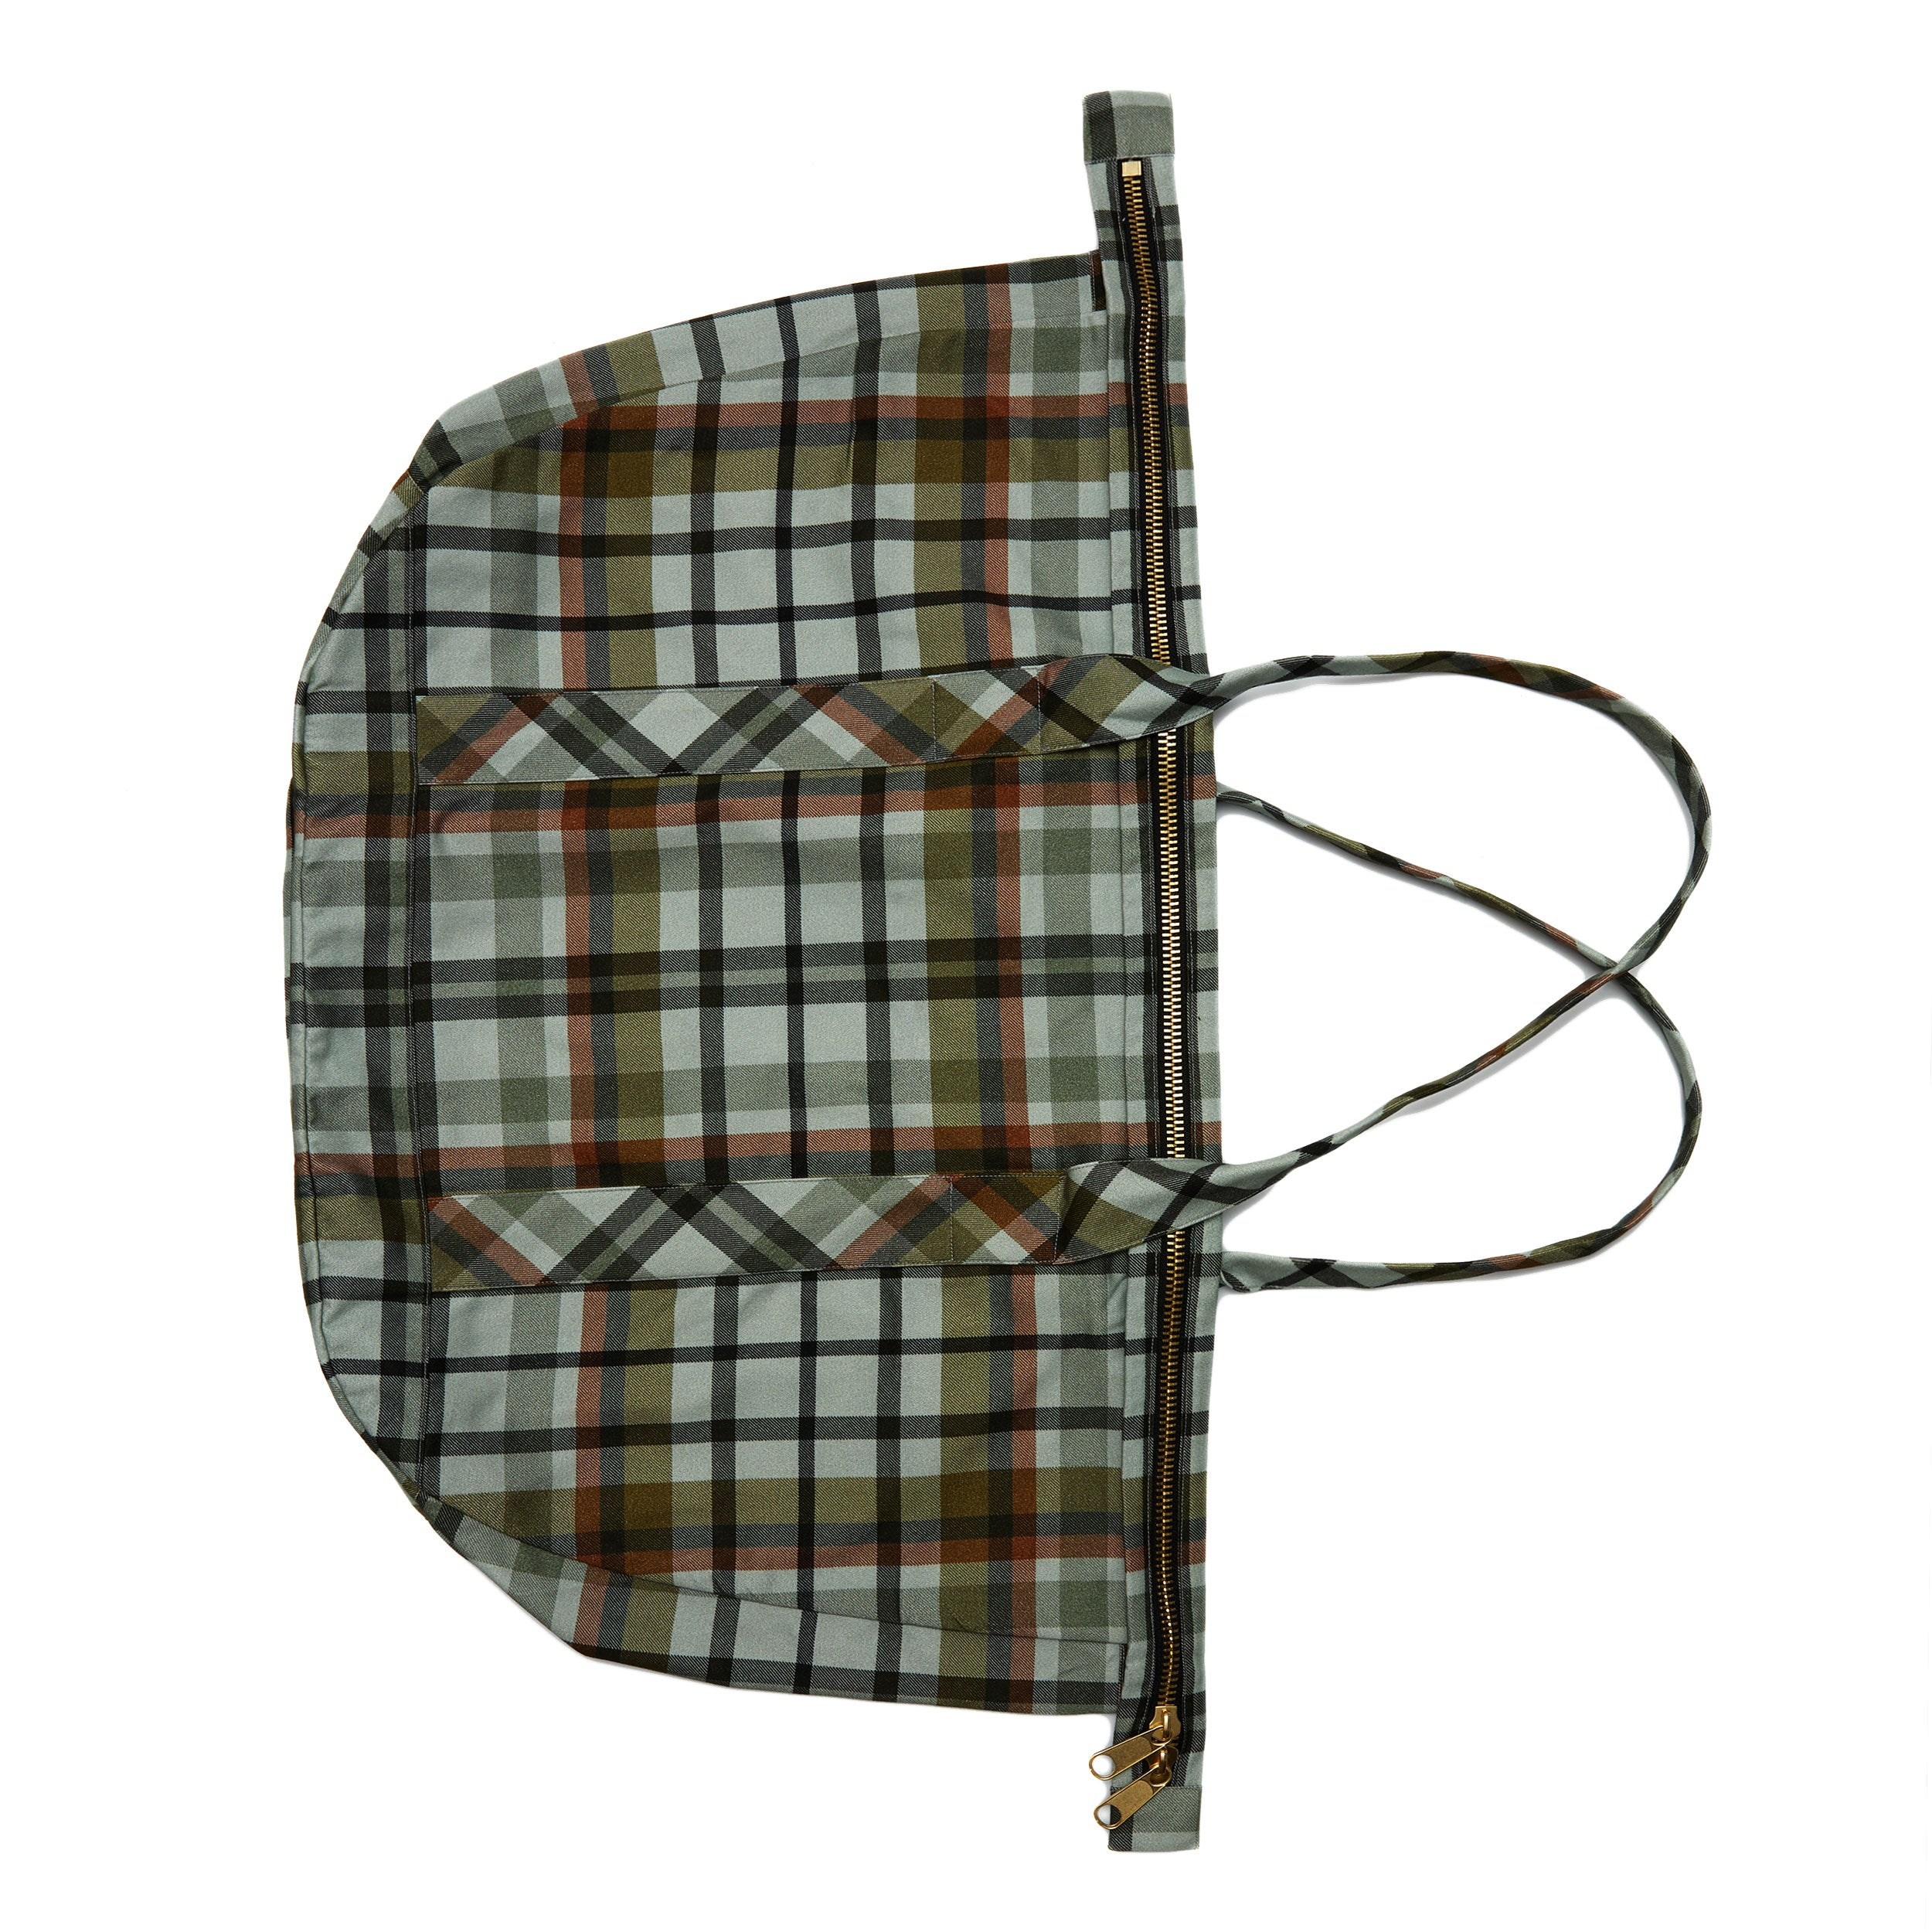 The Tiger Stripe Plaid Satchel